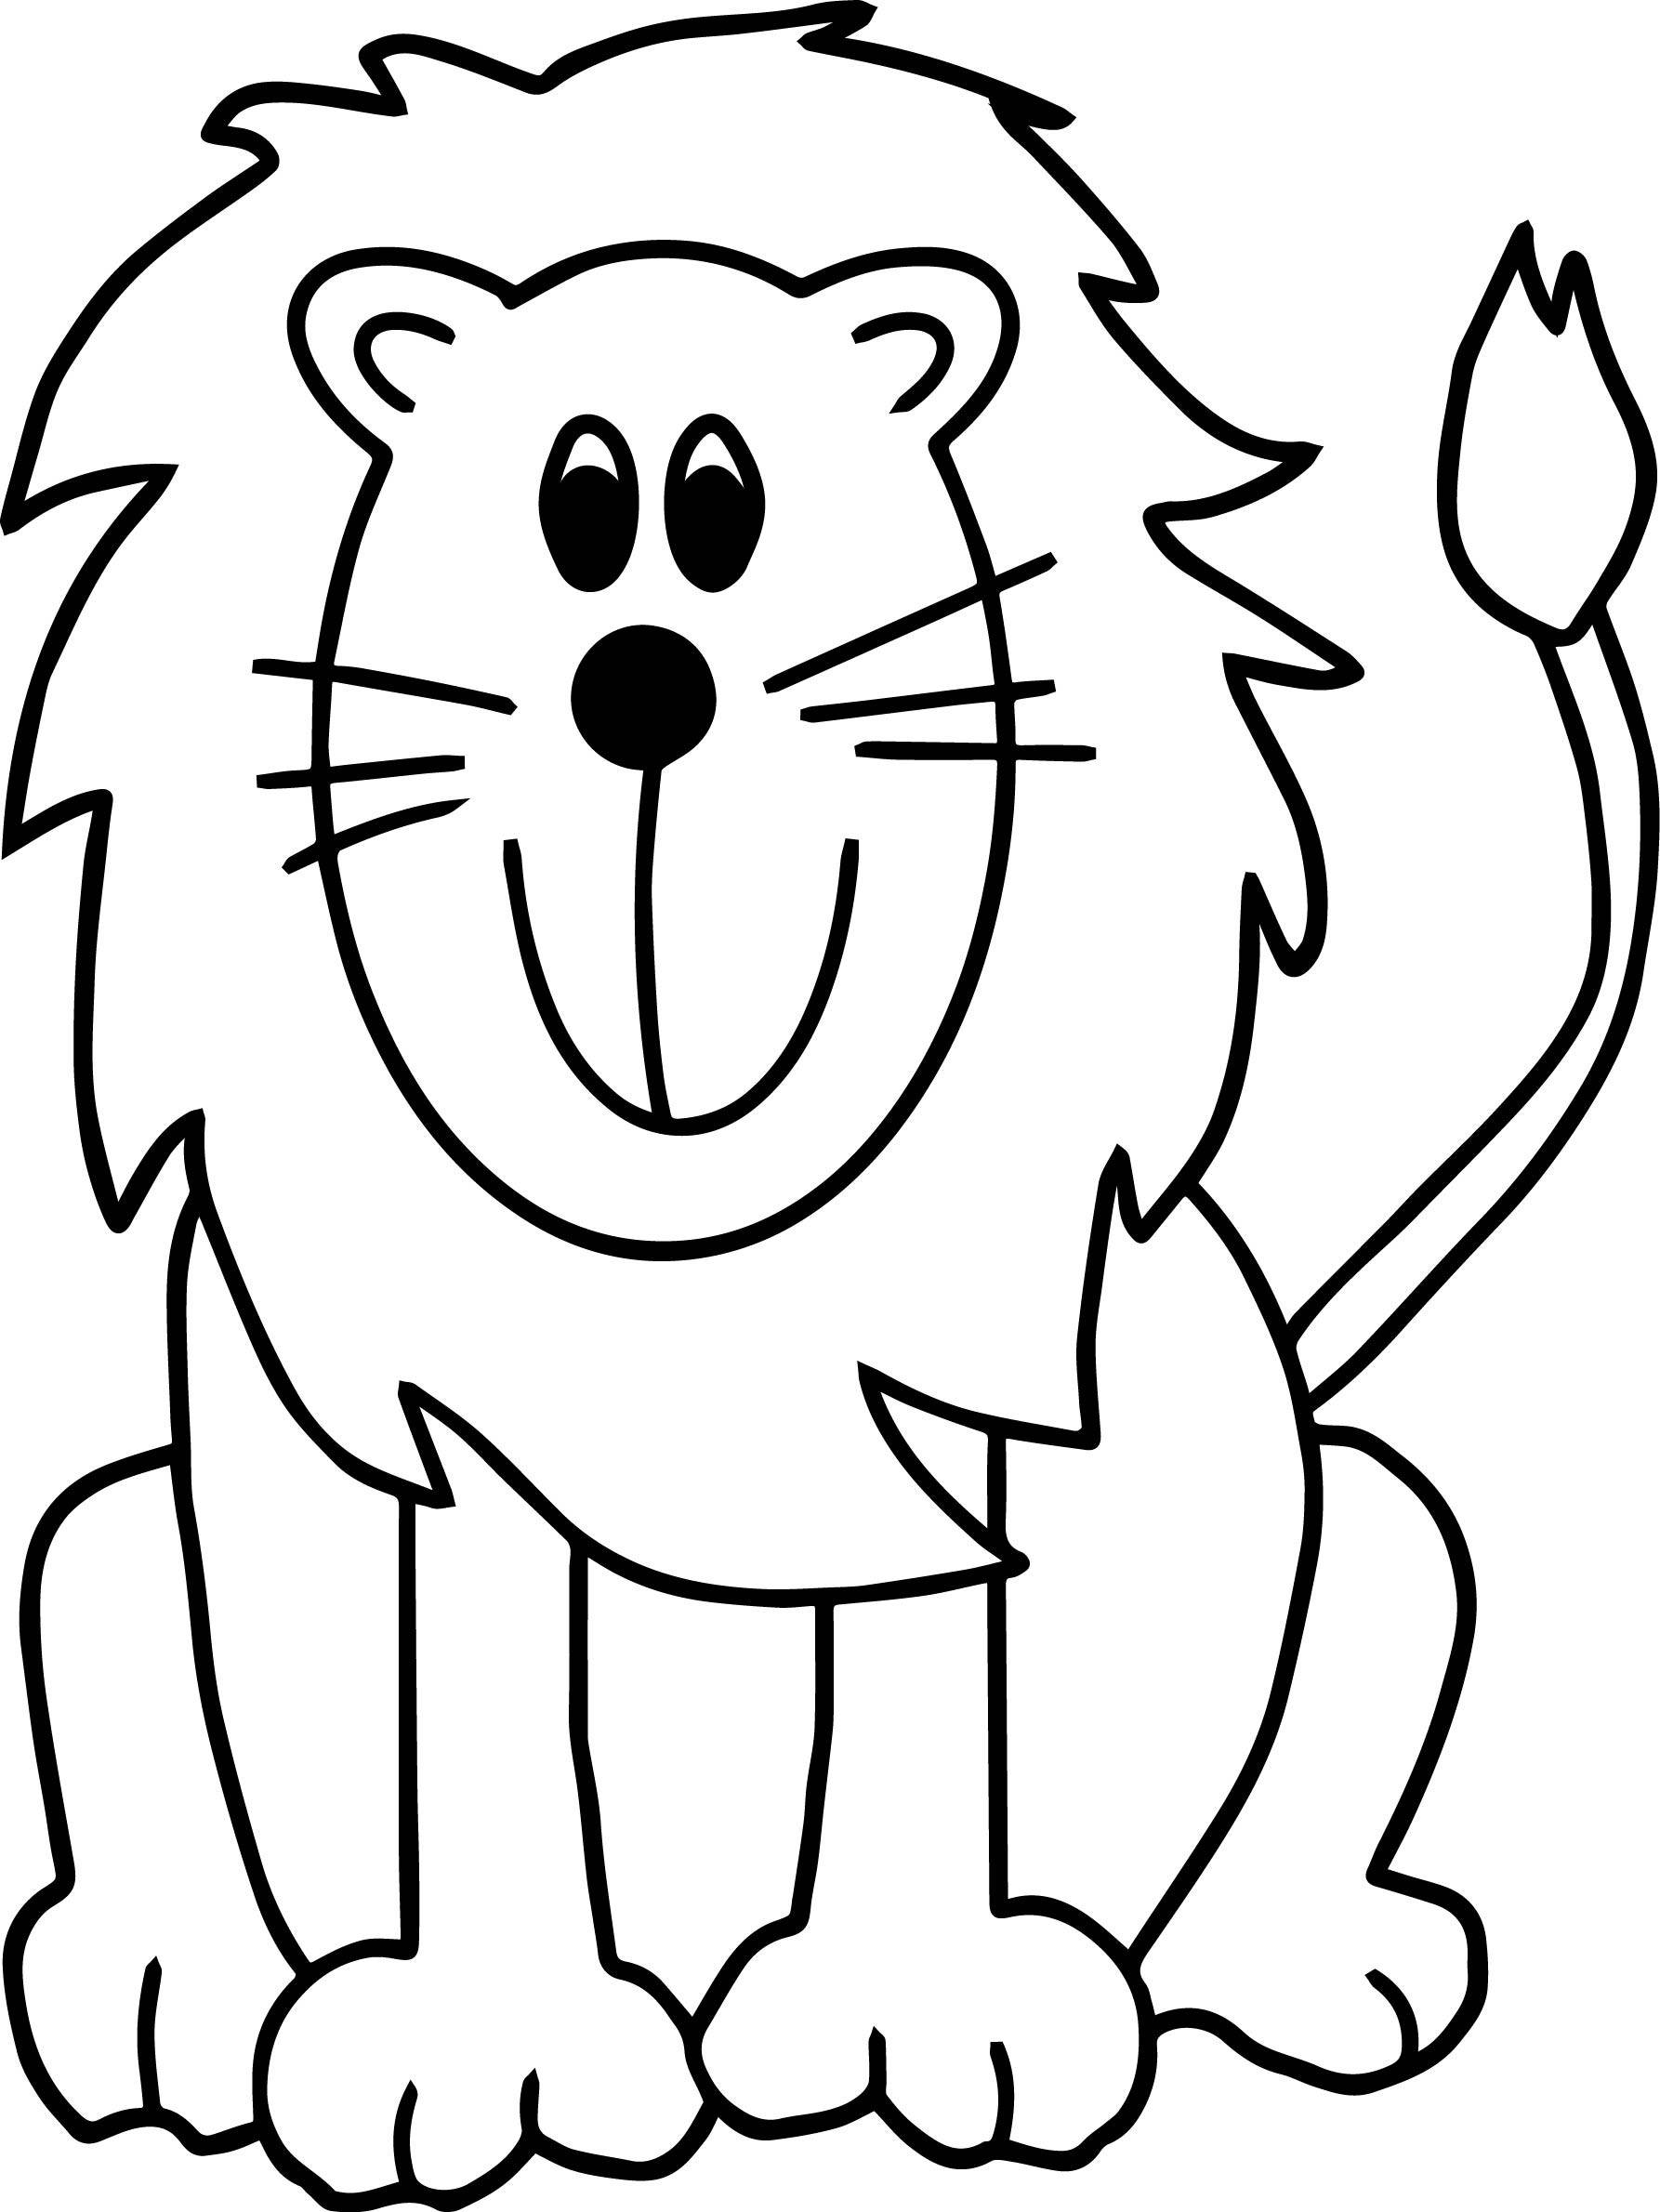 free printable zoo coloring pages coloring sheet zoo animals best of collection zoo coloring coloring printable free zoo pages